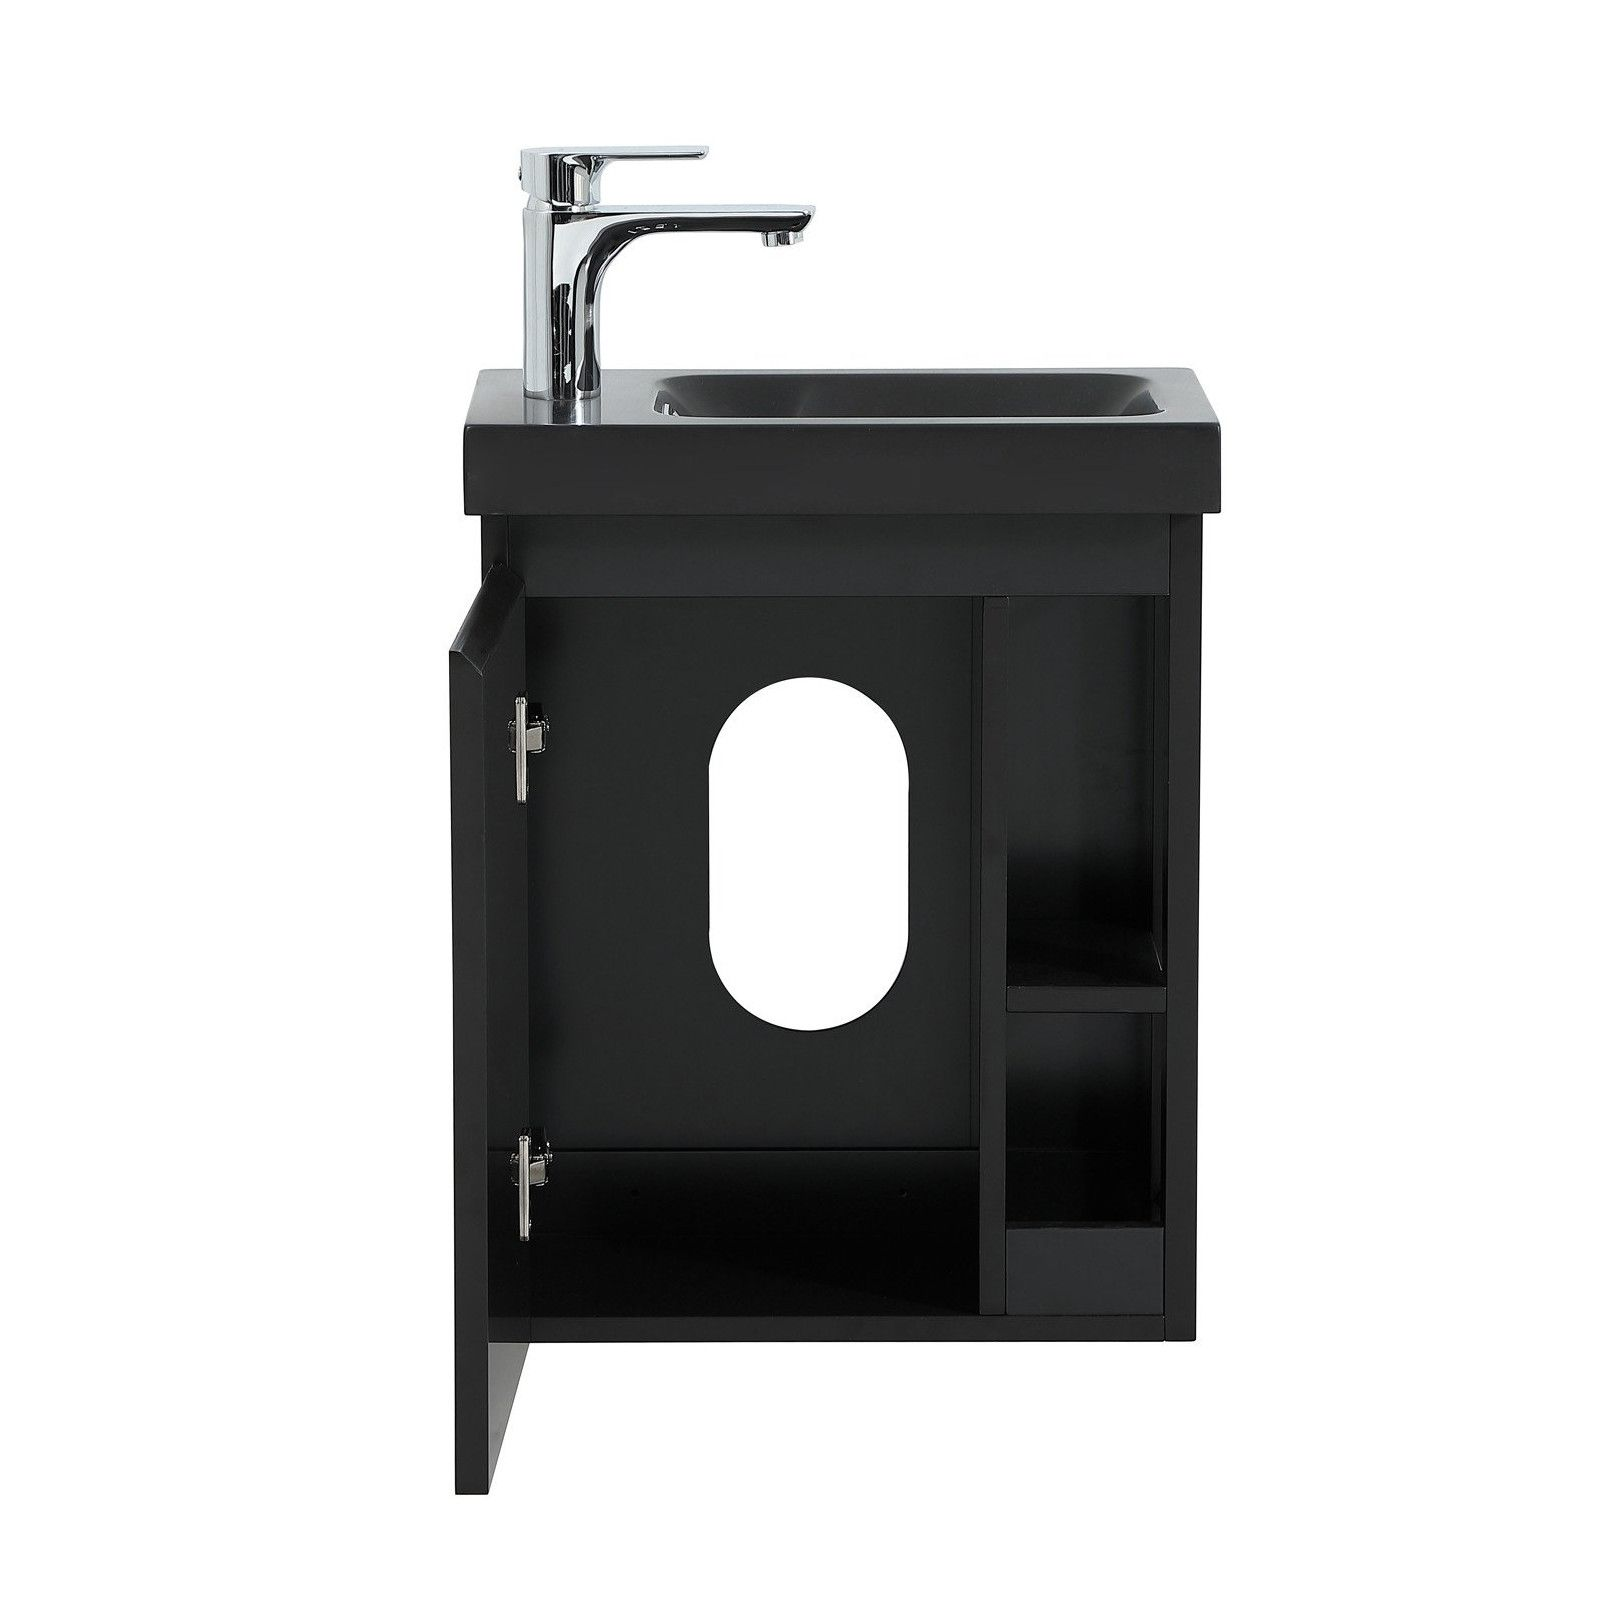 Mob In Com Meuble Lave Mains Hampton Noir Carbone Noir